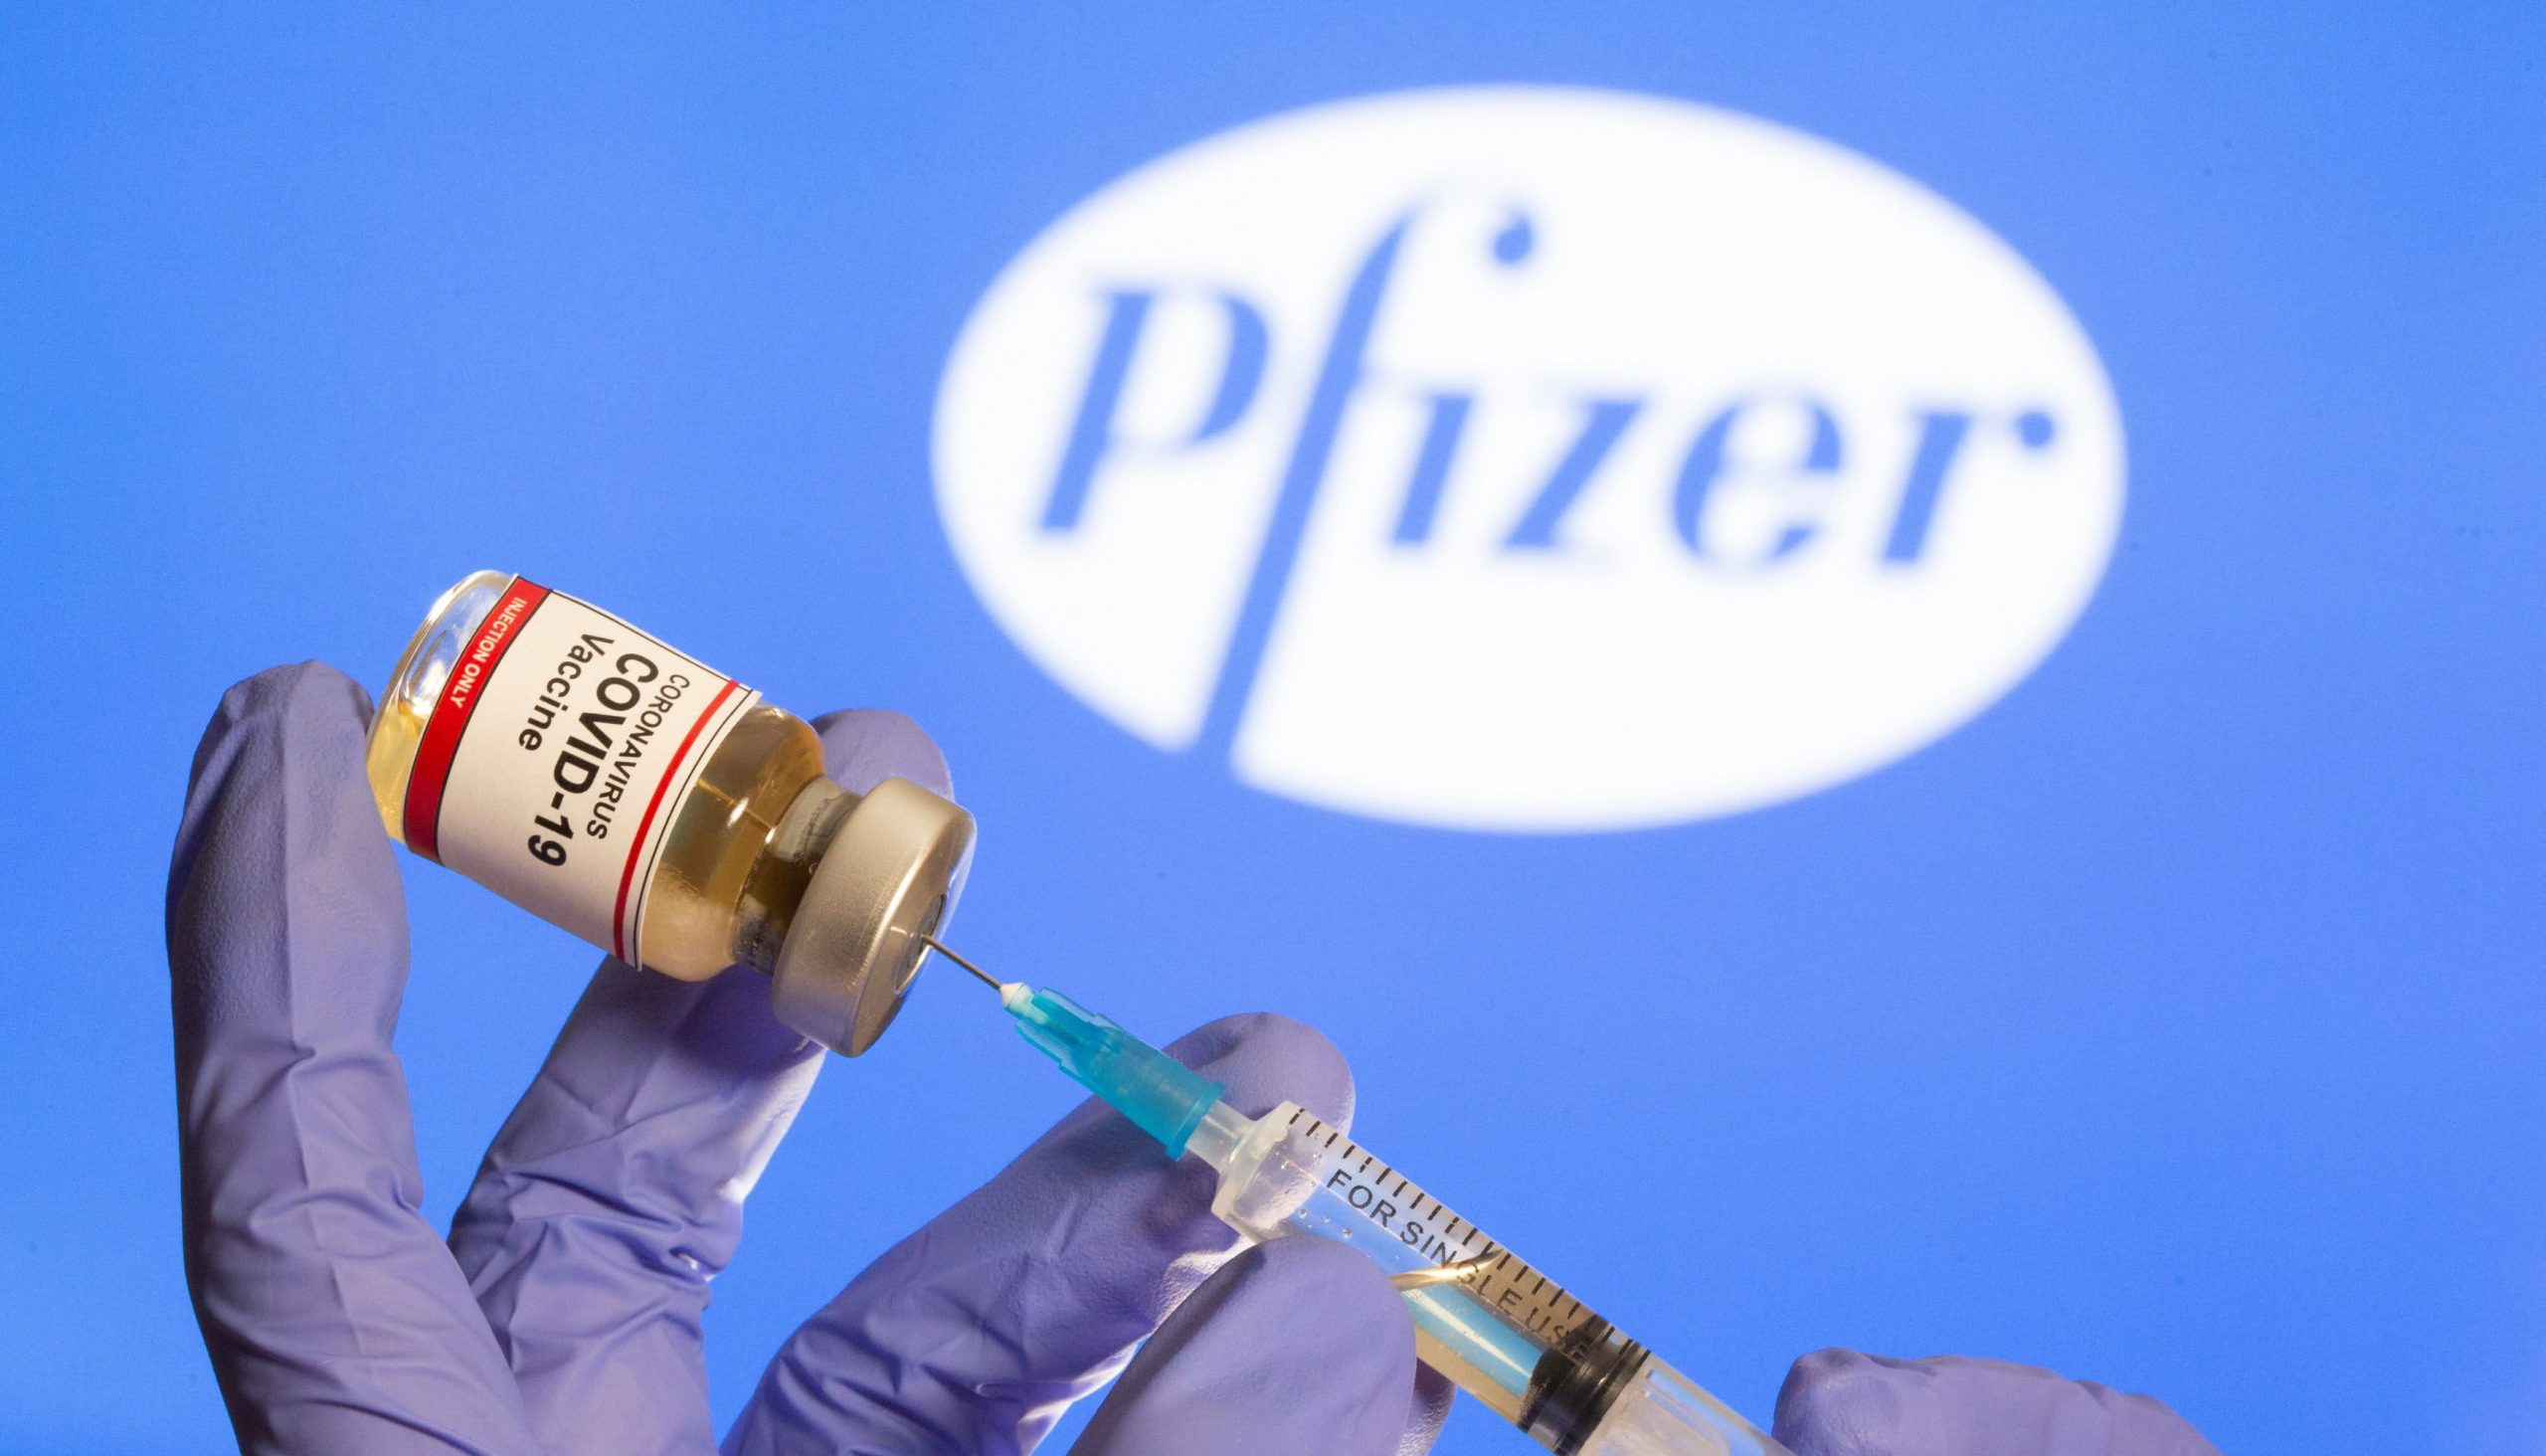 FAA: Pilots and air traffic controllers may receive Pfizer COVID-19 vaccine